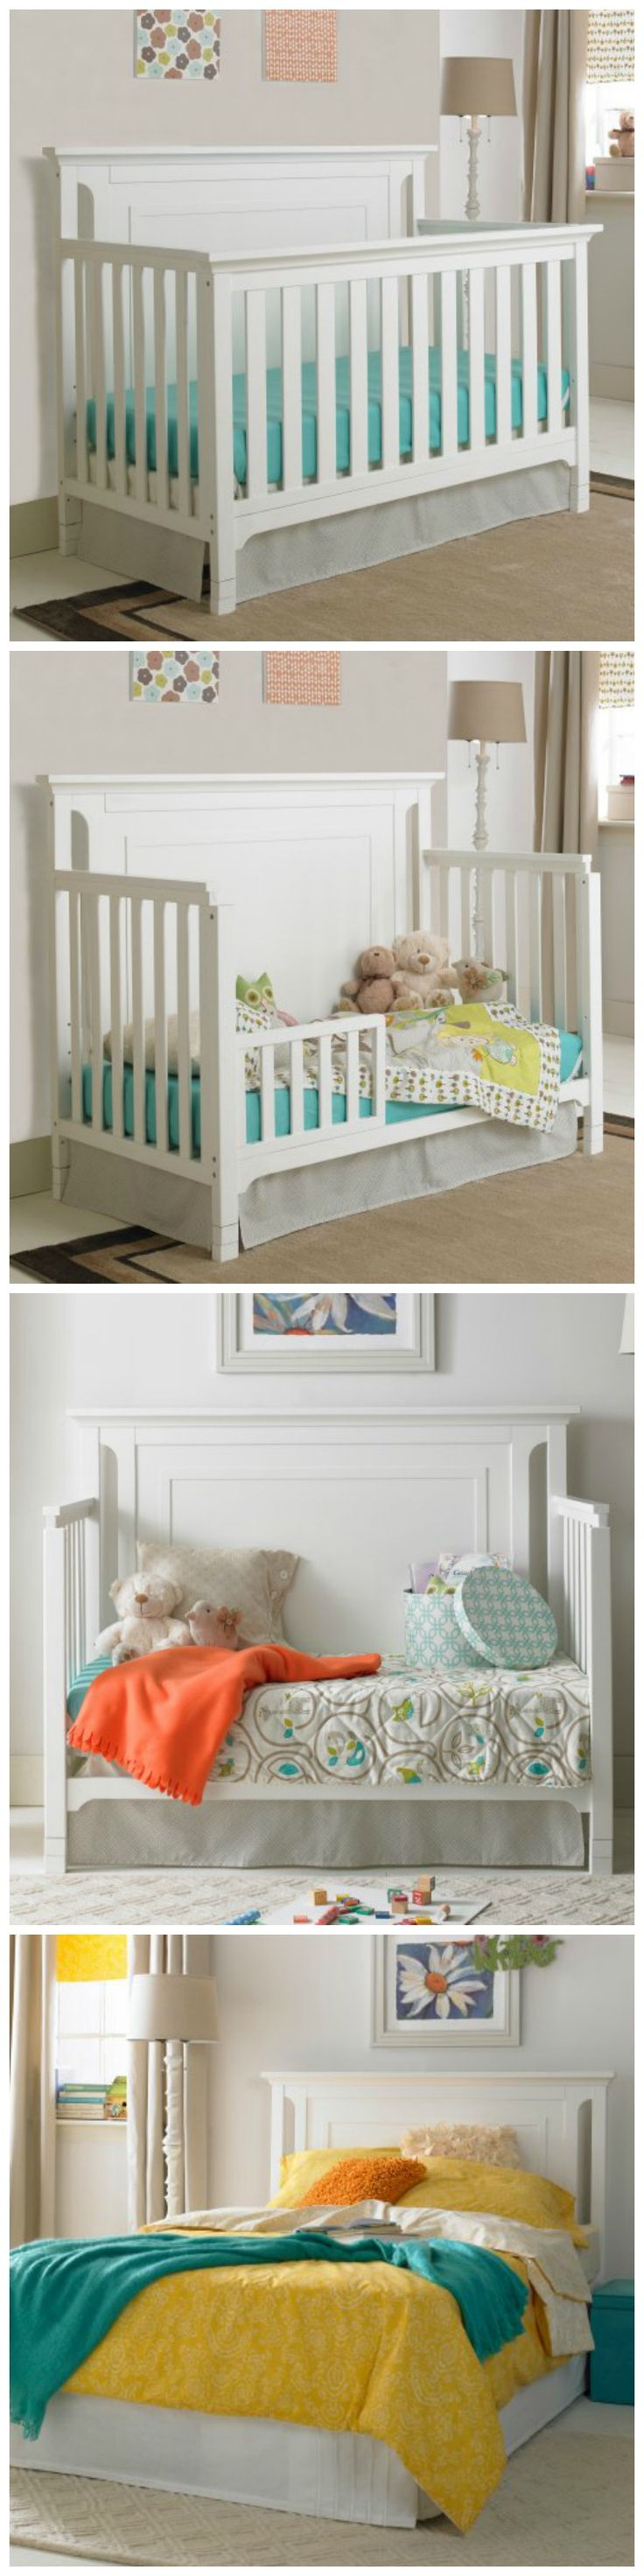 4 in 1 convertible crib.